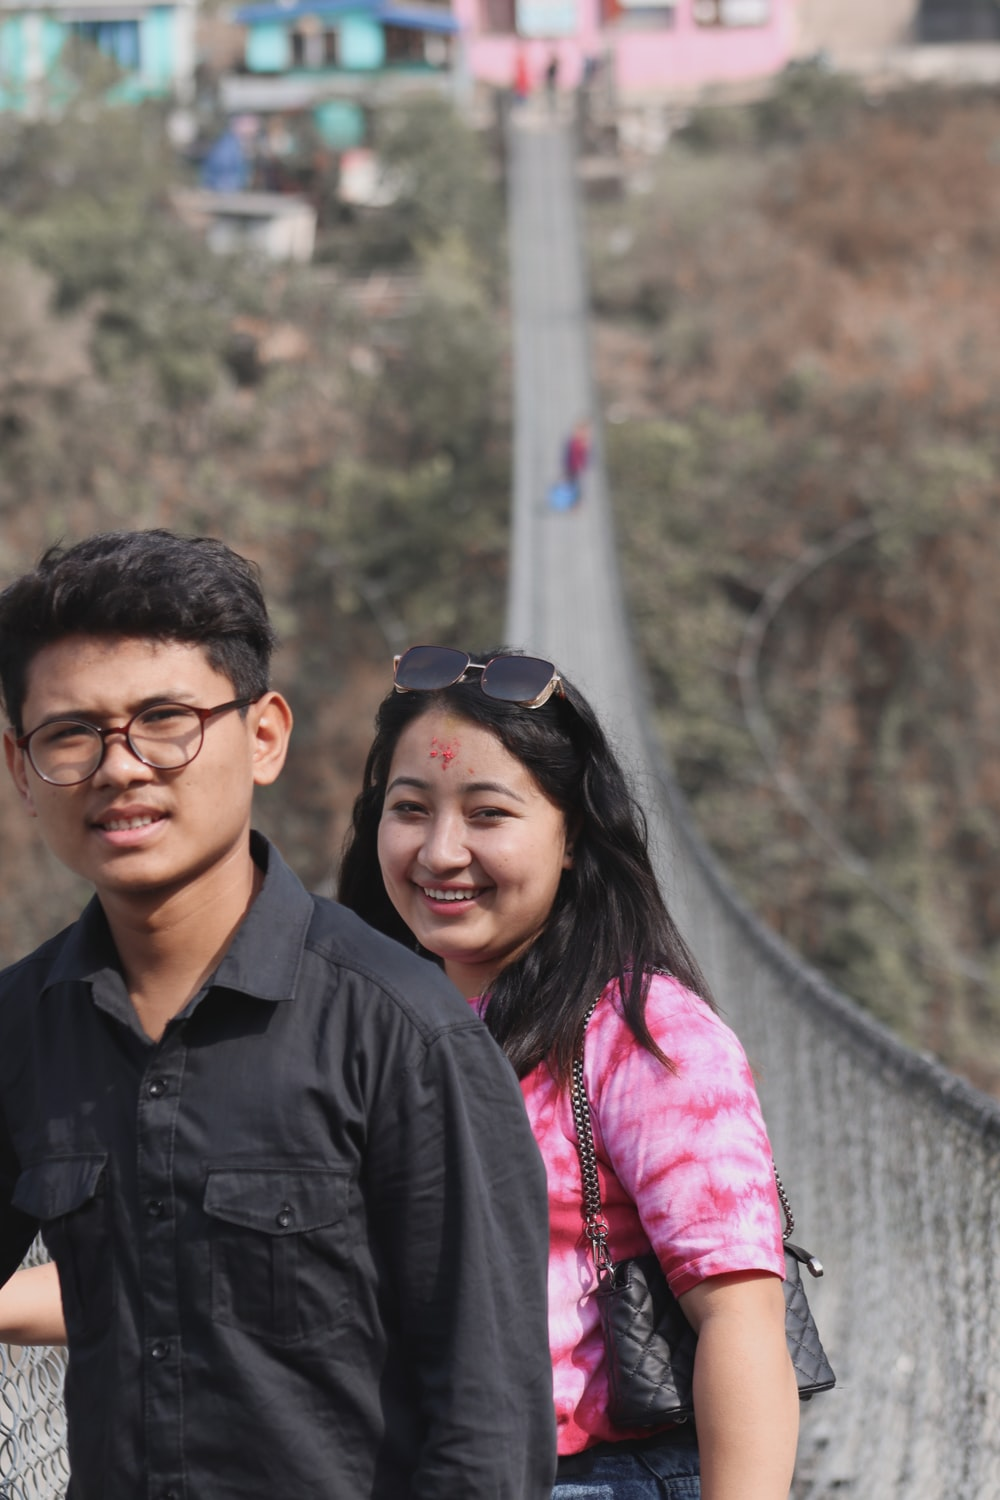 man in black button up shirt beside woman in pink jacket